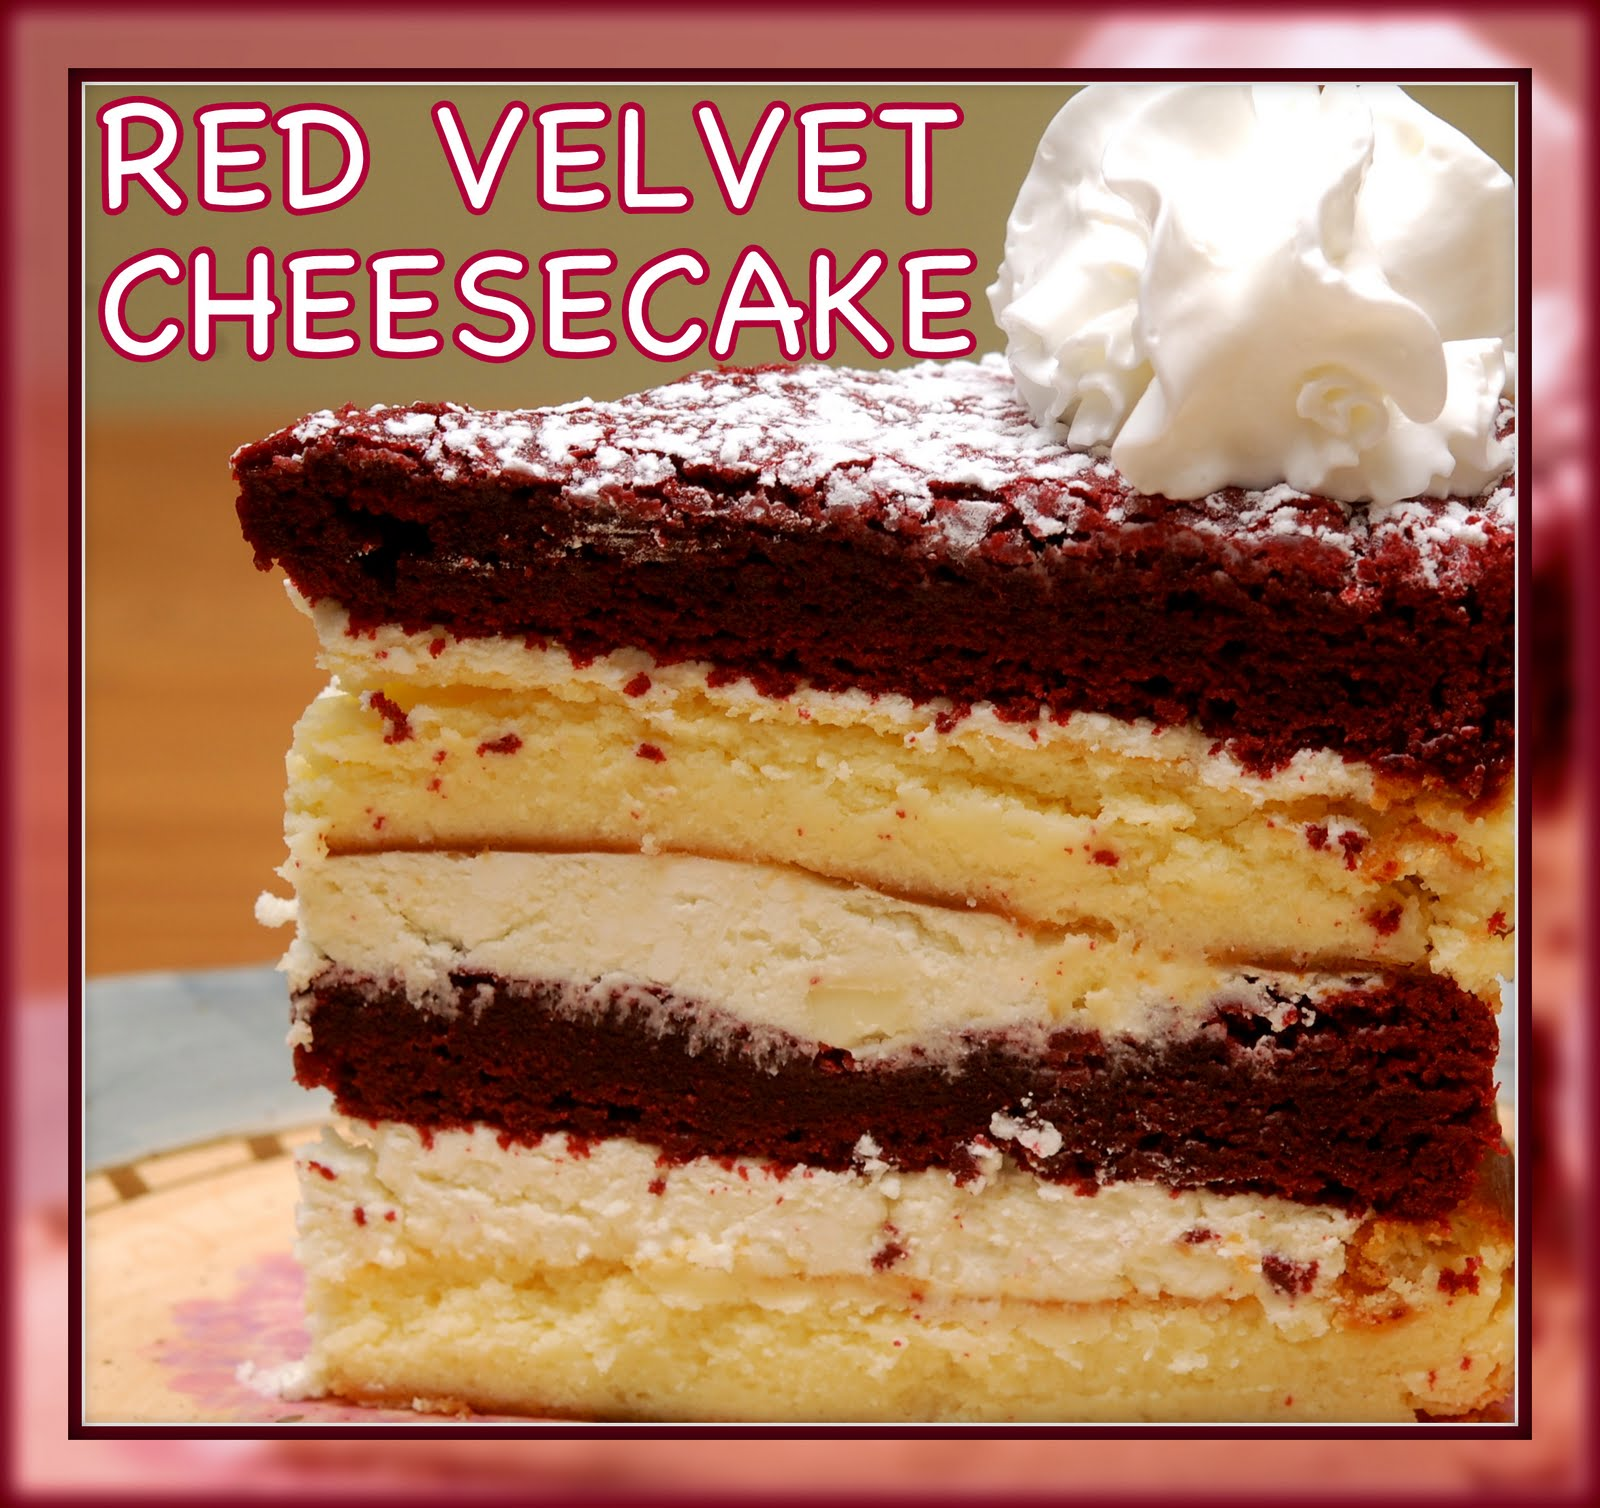 RED VELVET CHEESECAKE - Hugs and Cookies XOXO